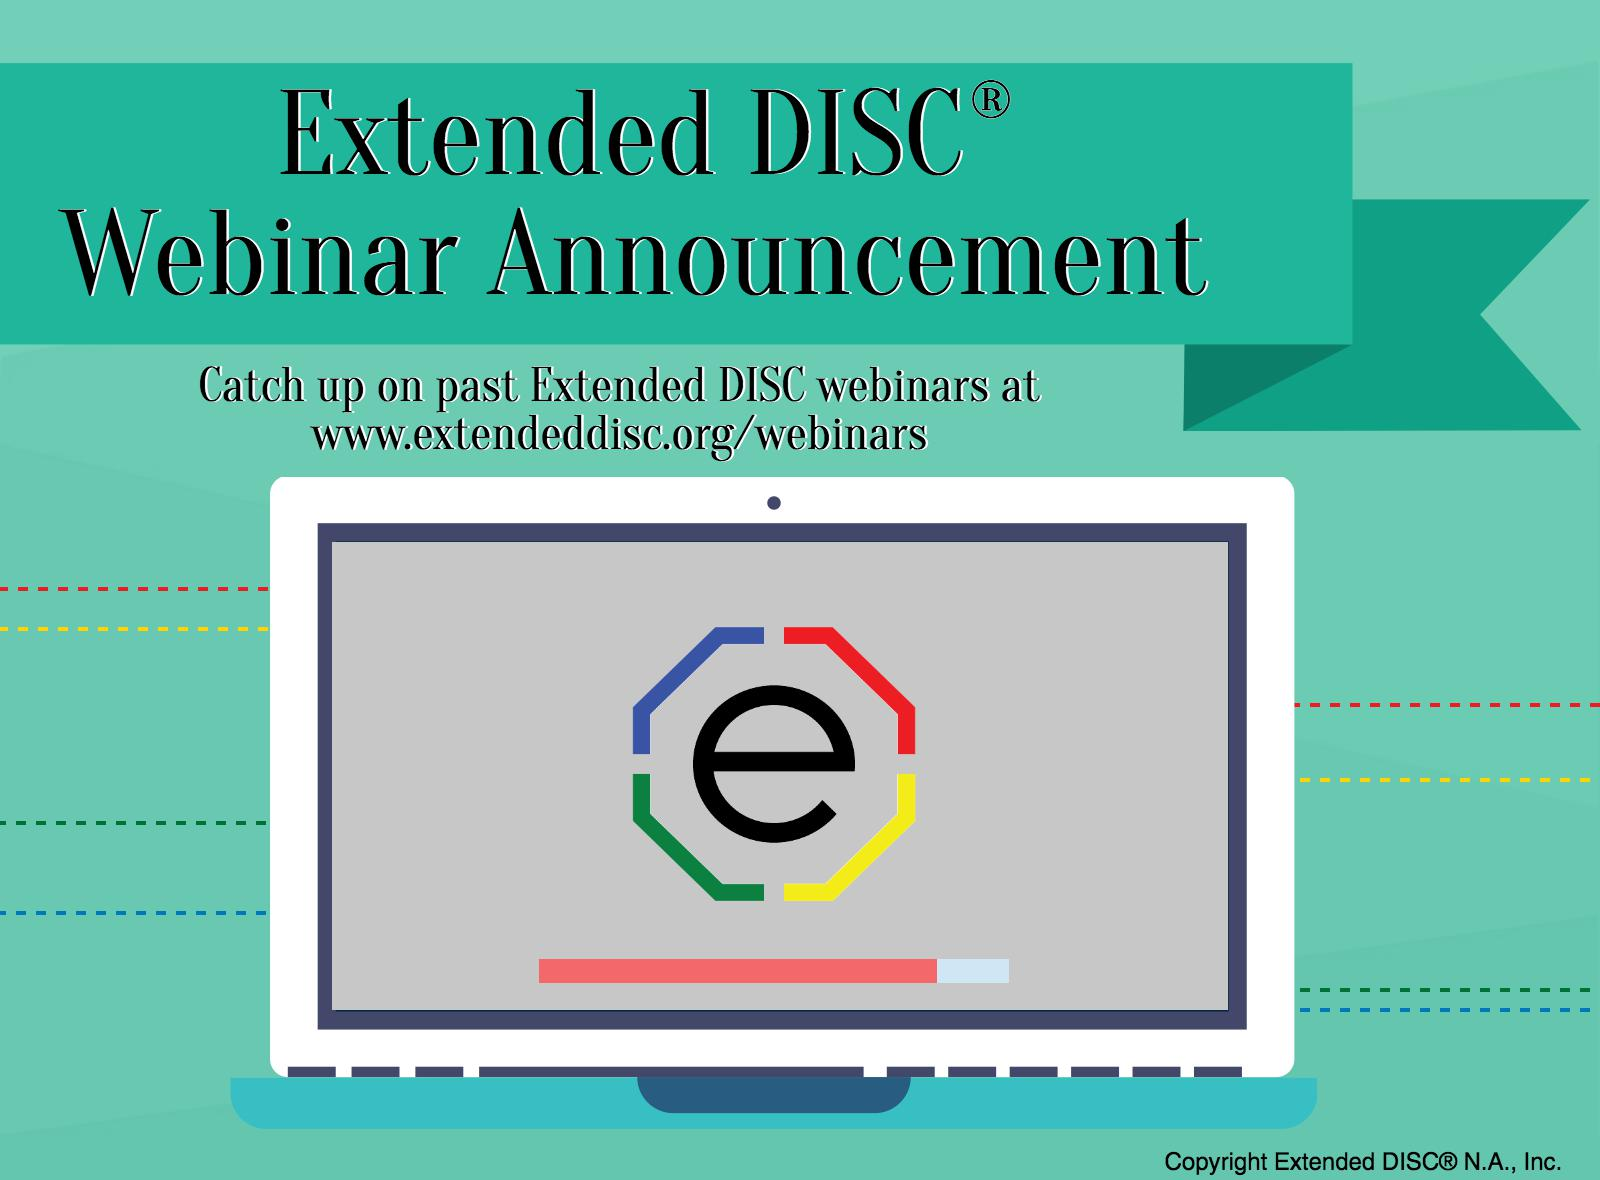 Using Team DISC Assessments Webinar